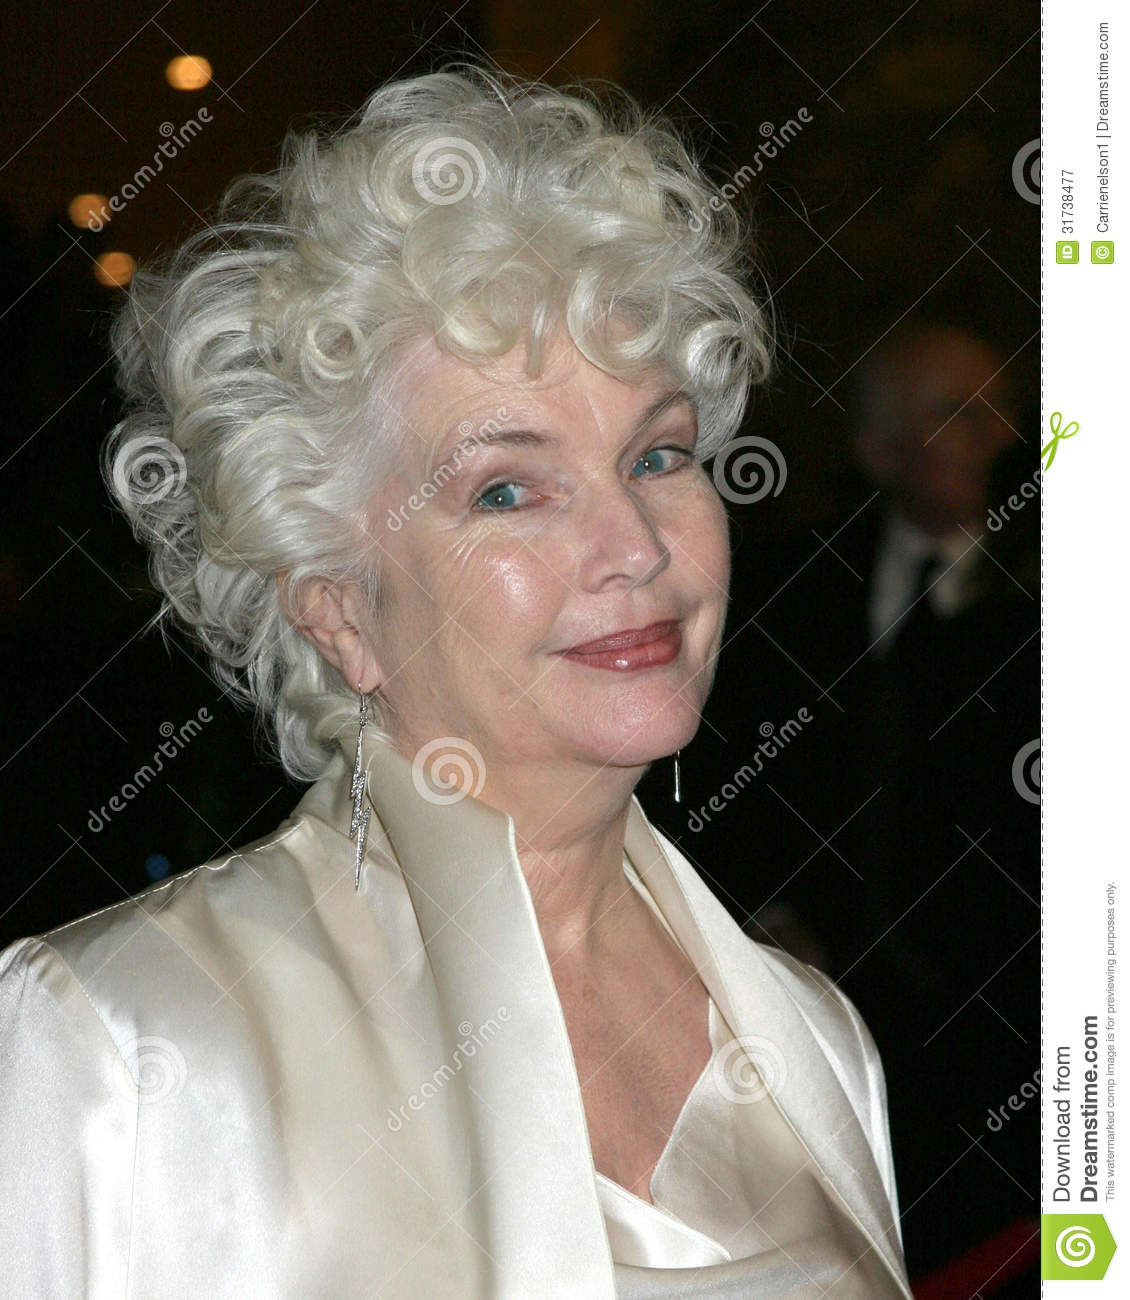 fionnula flanagan images